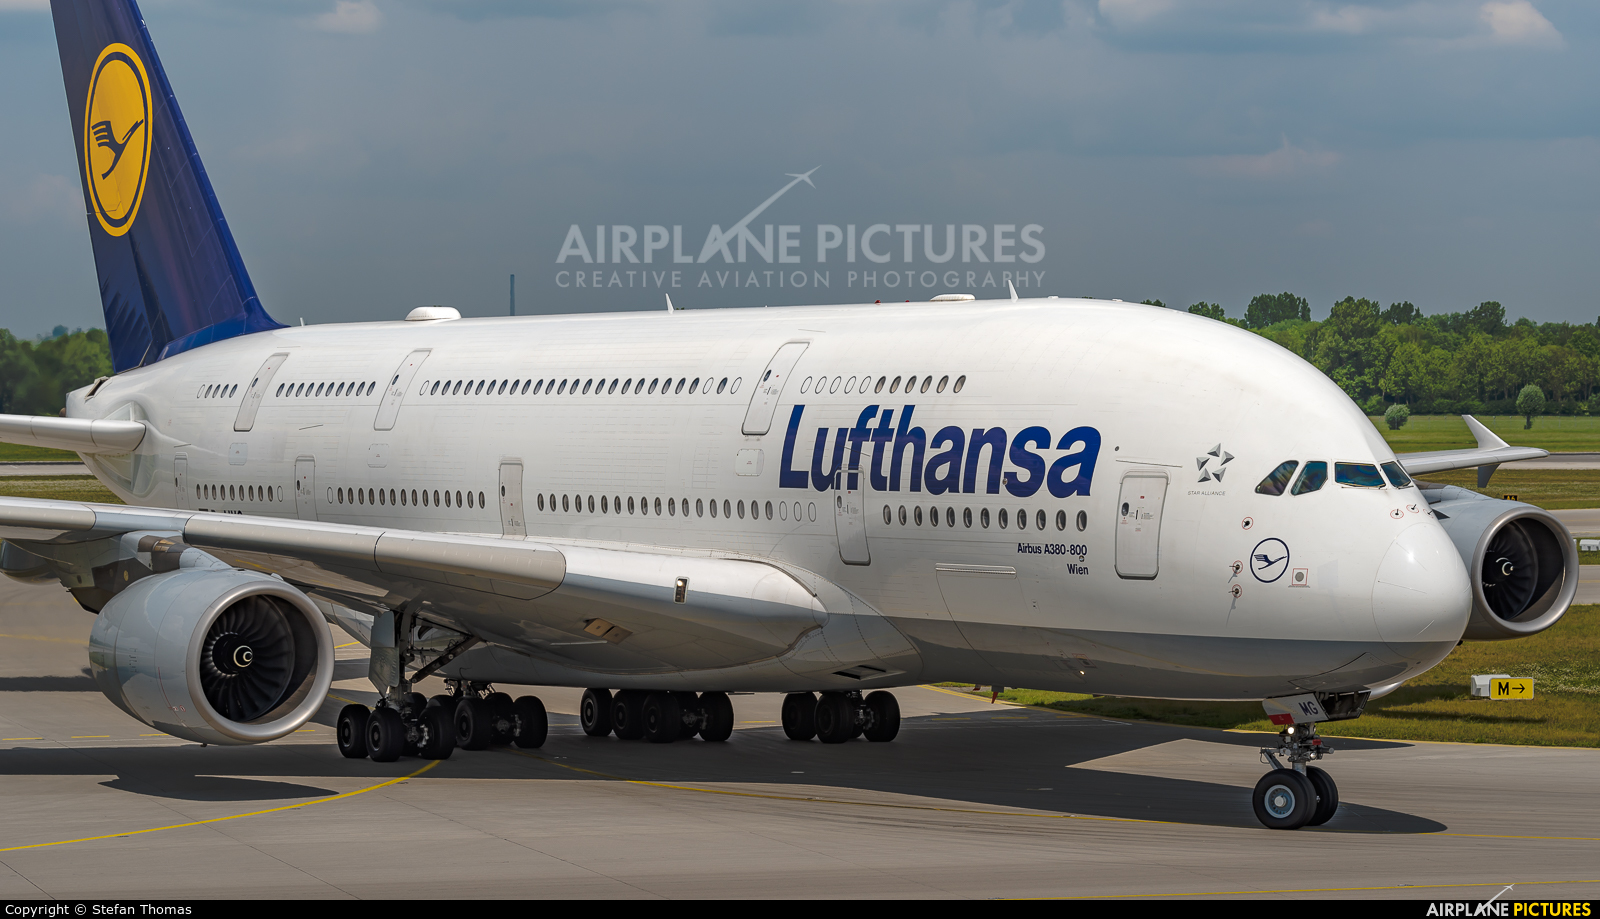 Lufthansa D-AIMG aircraft at Munich